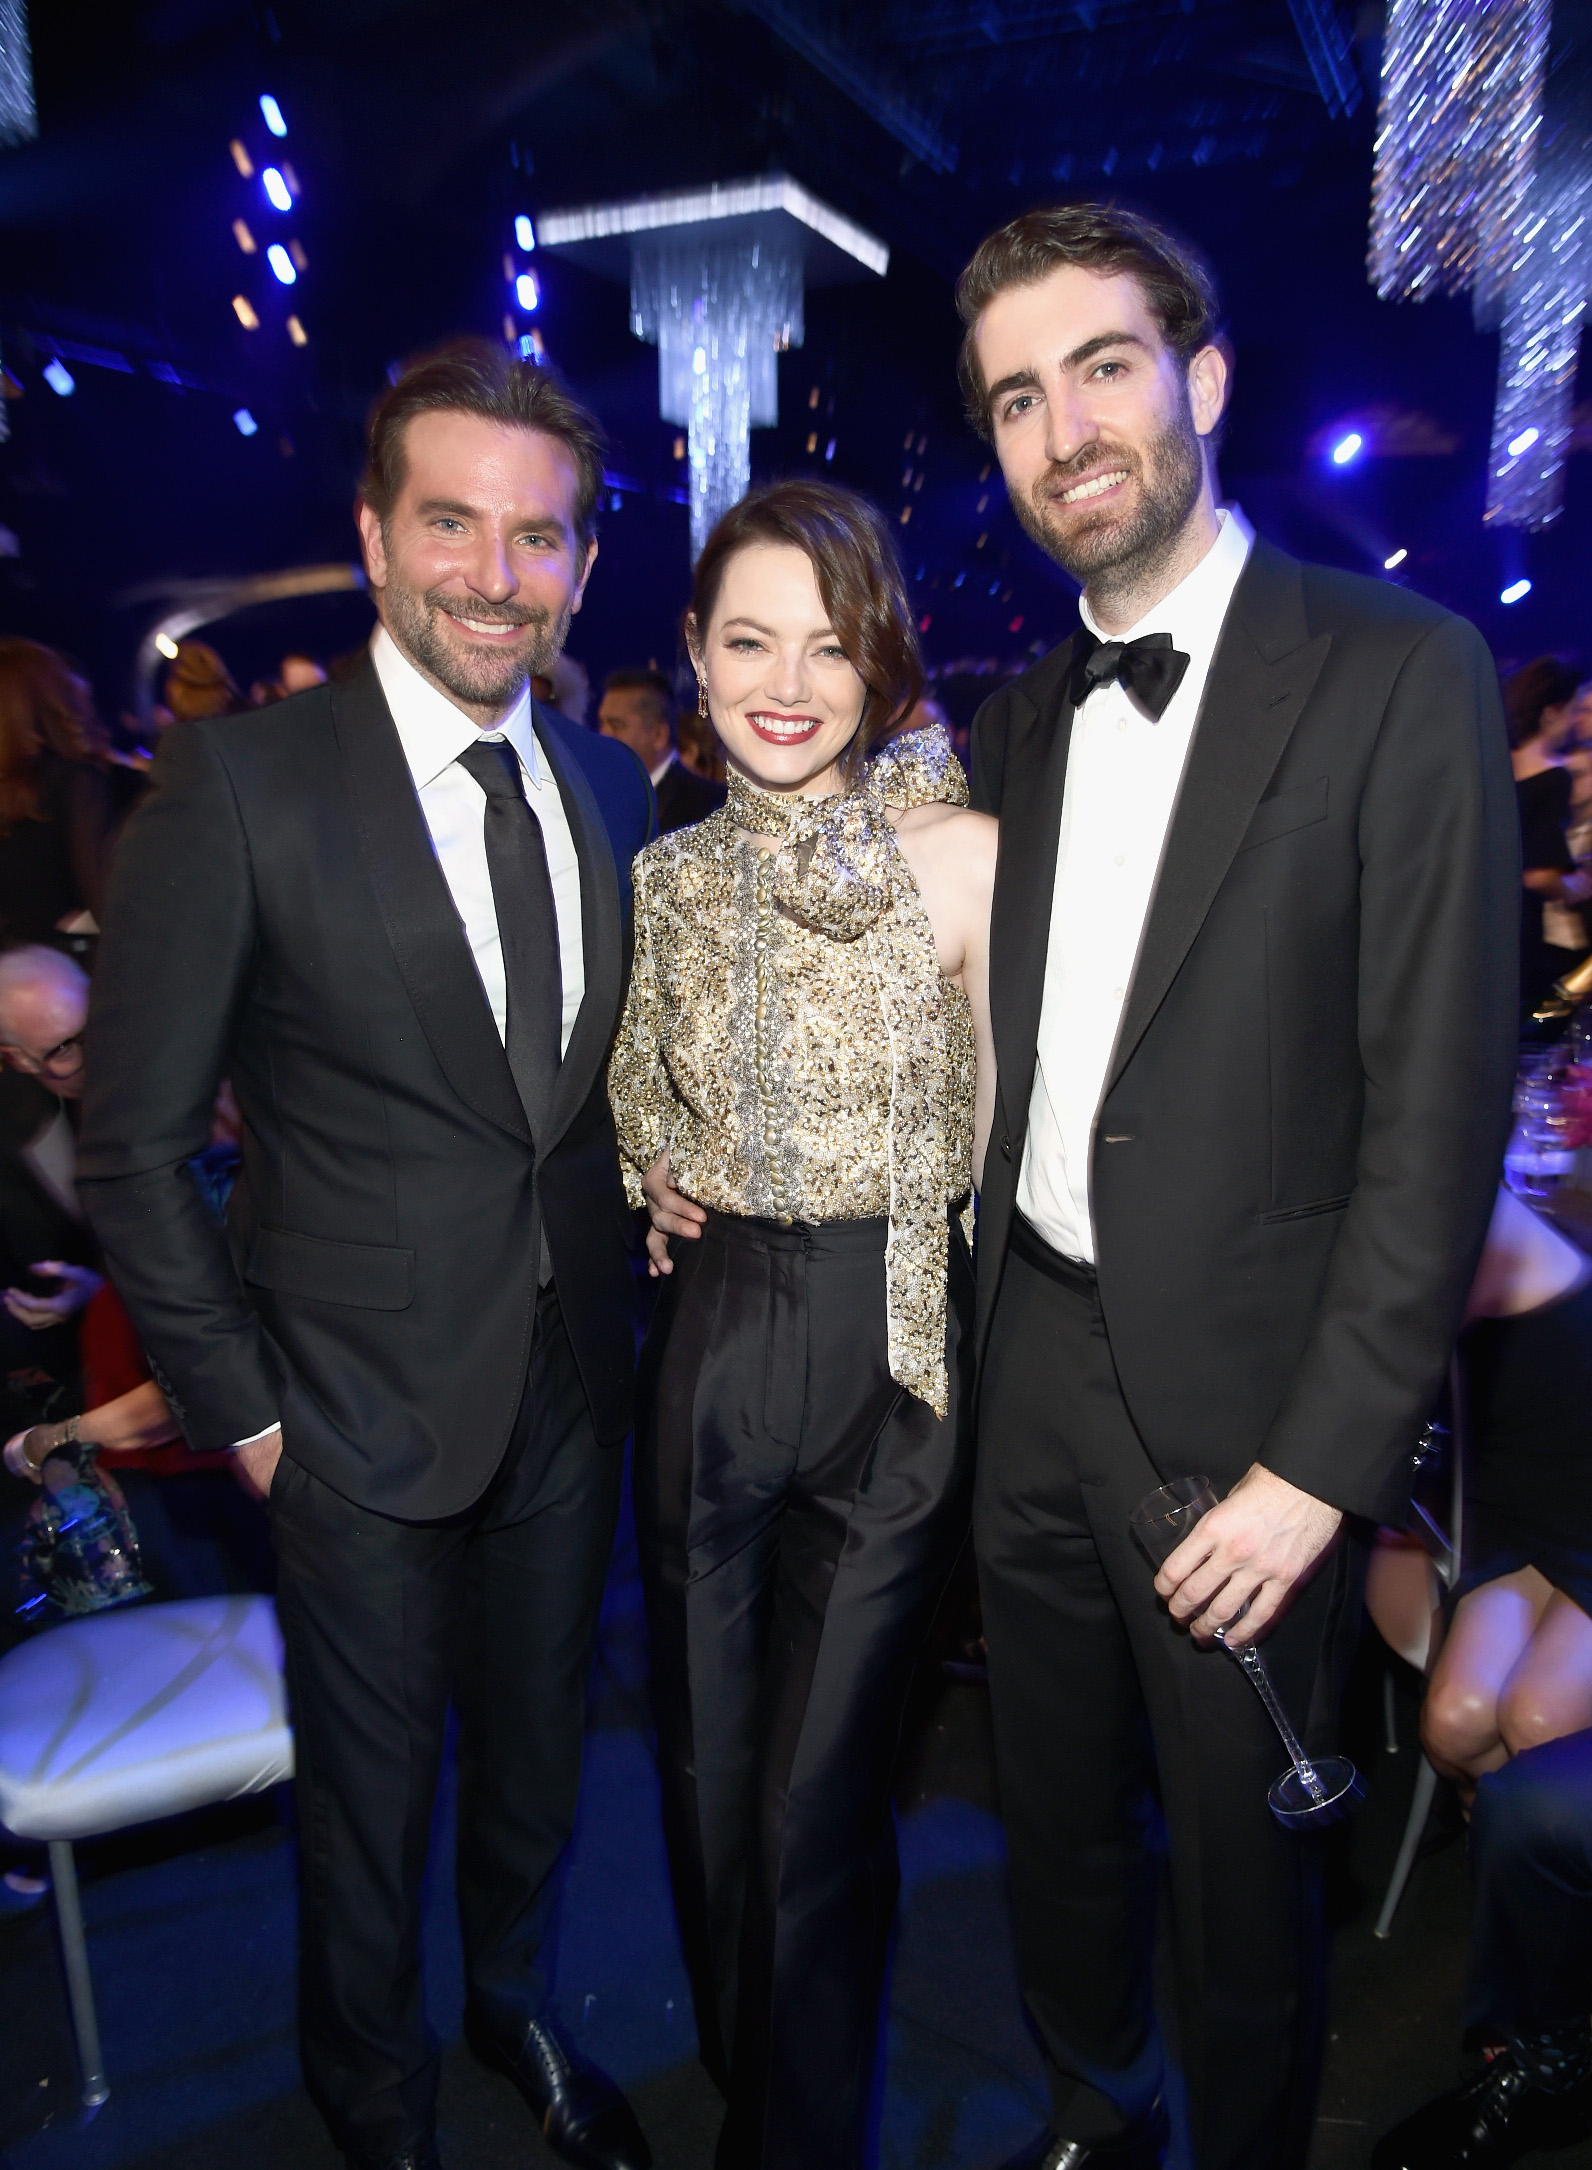 LOS ANGELES, CA - JANUARY 27:  (L-R) Bradley Cooper, Emma Stone, and Dave McCary during the 25th Annual Screen Actors Guild Awards at The Shrine Auditorium on January 27, 2019 in Los Angeles, California. 480595  (Photo by Dimitrios Kambouris/Getty Images for Turner)